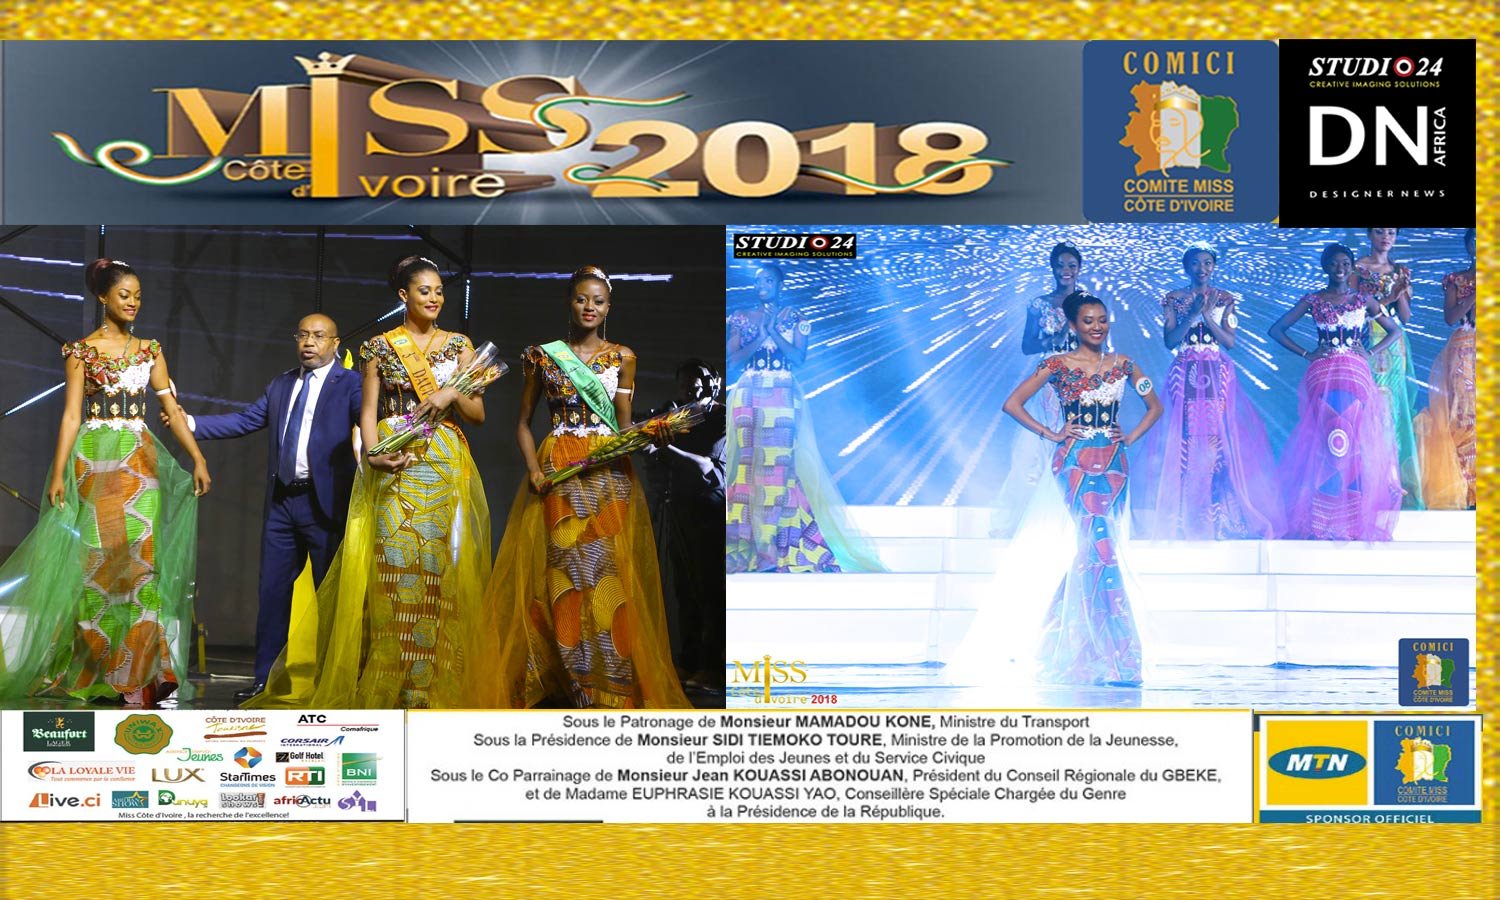 MISS COTE D'IVOIRE 2018 -AFRICAN FASHION STYLE MAGAZINE -MISS IVORY COAST 2018 - MISS MARIE-DANIELLE SUY FATEM - FIRST RUNNER Miss GBATO Jemima - DN AFRICA - STUDIO 24 NIGERIA